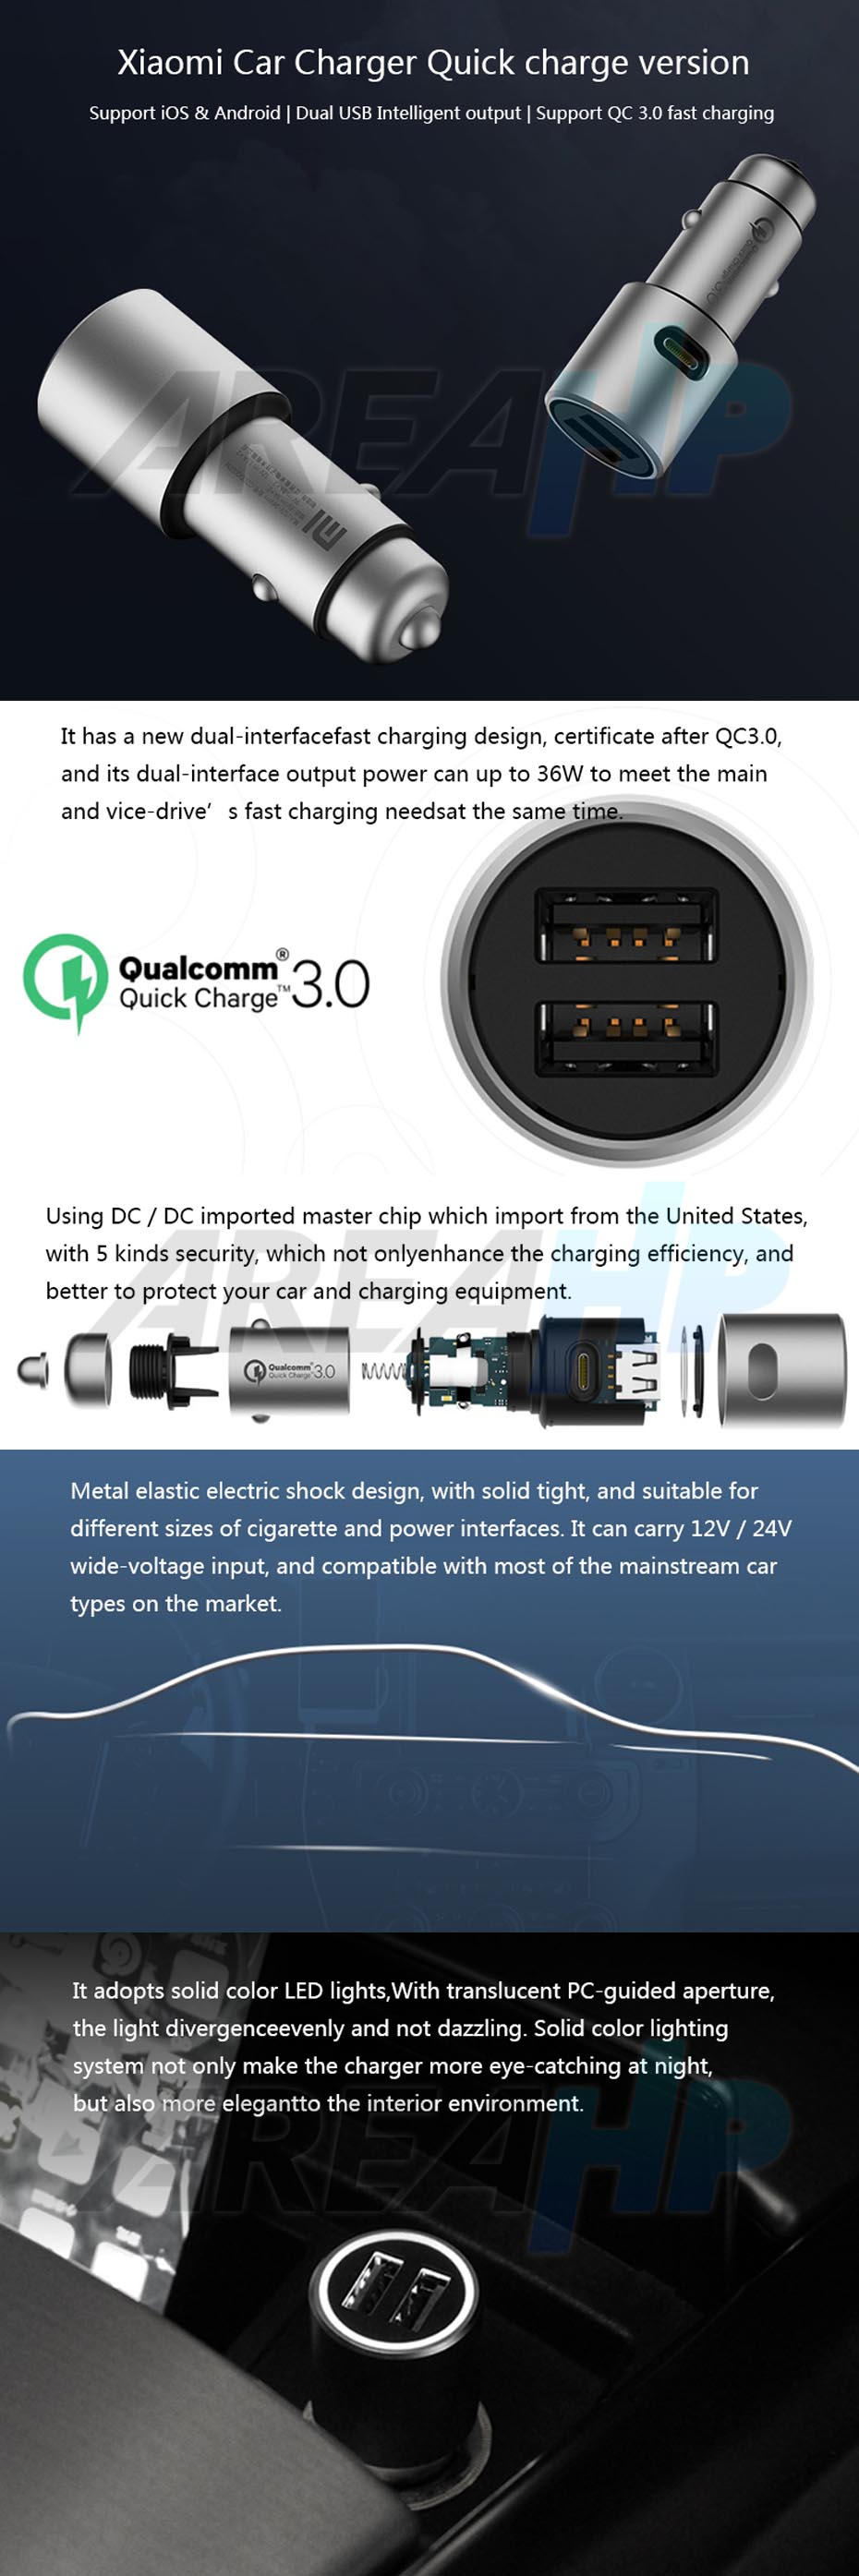 Xiaomi Universal Car Fast Charger QC 3.0 2 Slot USB for All Phone, Tablet Original Overview